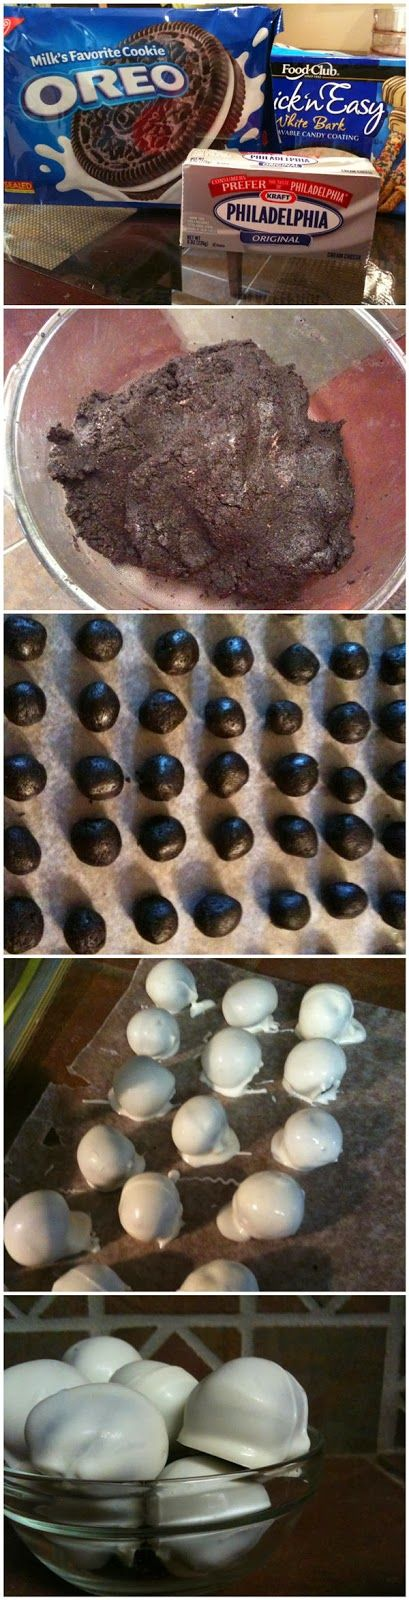 One of my all time favs - White Chocolate Covered Oreo Balls. These are freaking awesome. And if you do it just right, they look like eyeballs. Great for Halloween.